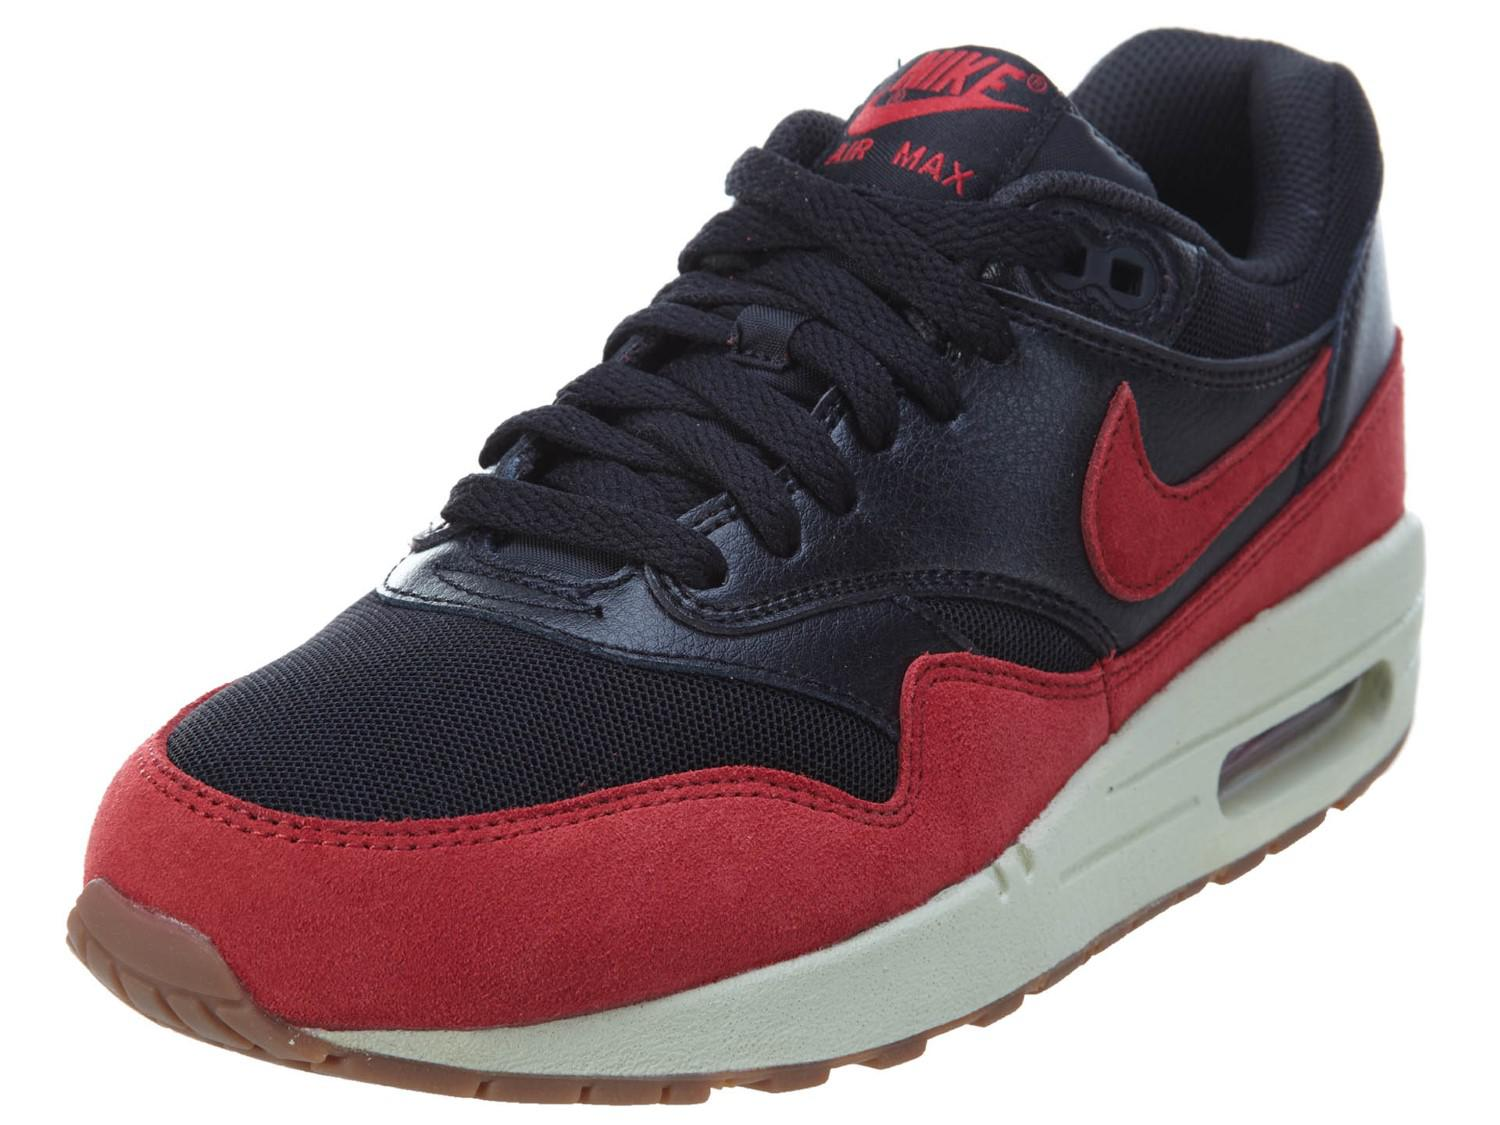 308175bc2e0e ... norway lyst nike air max 1 essential black gym red sail gm md brown  76ad6 aabec